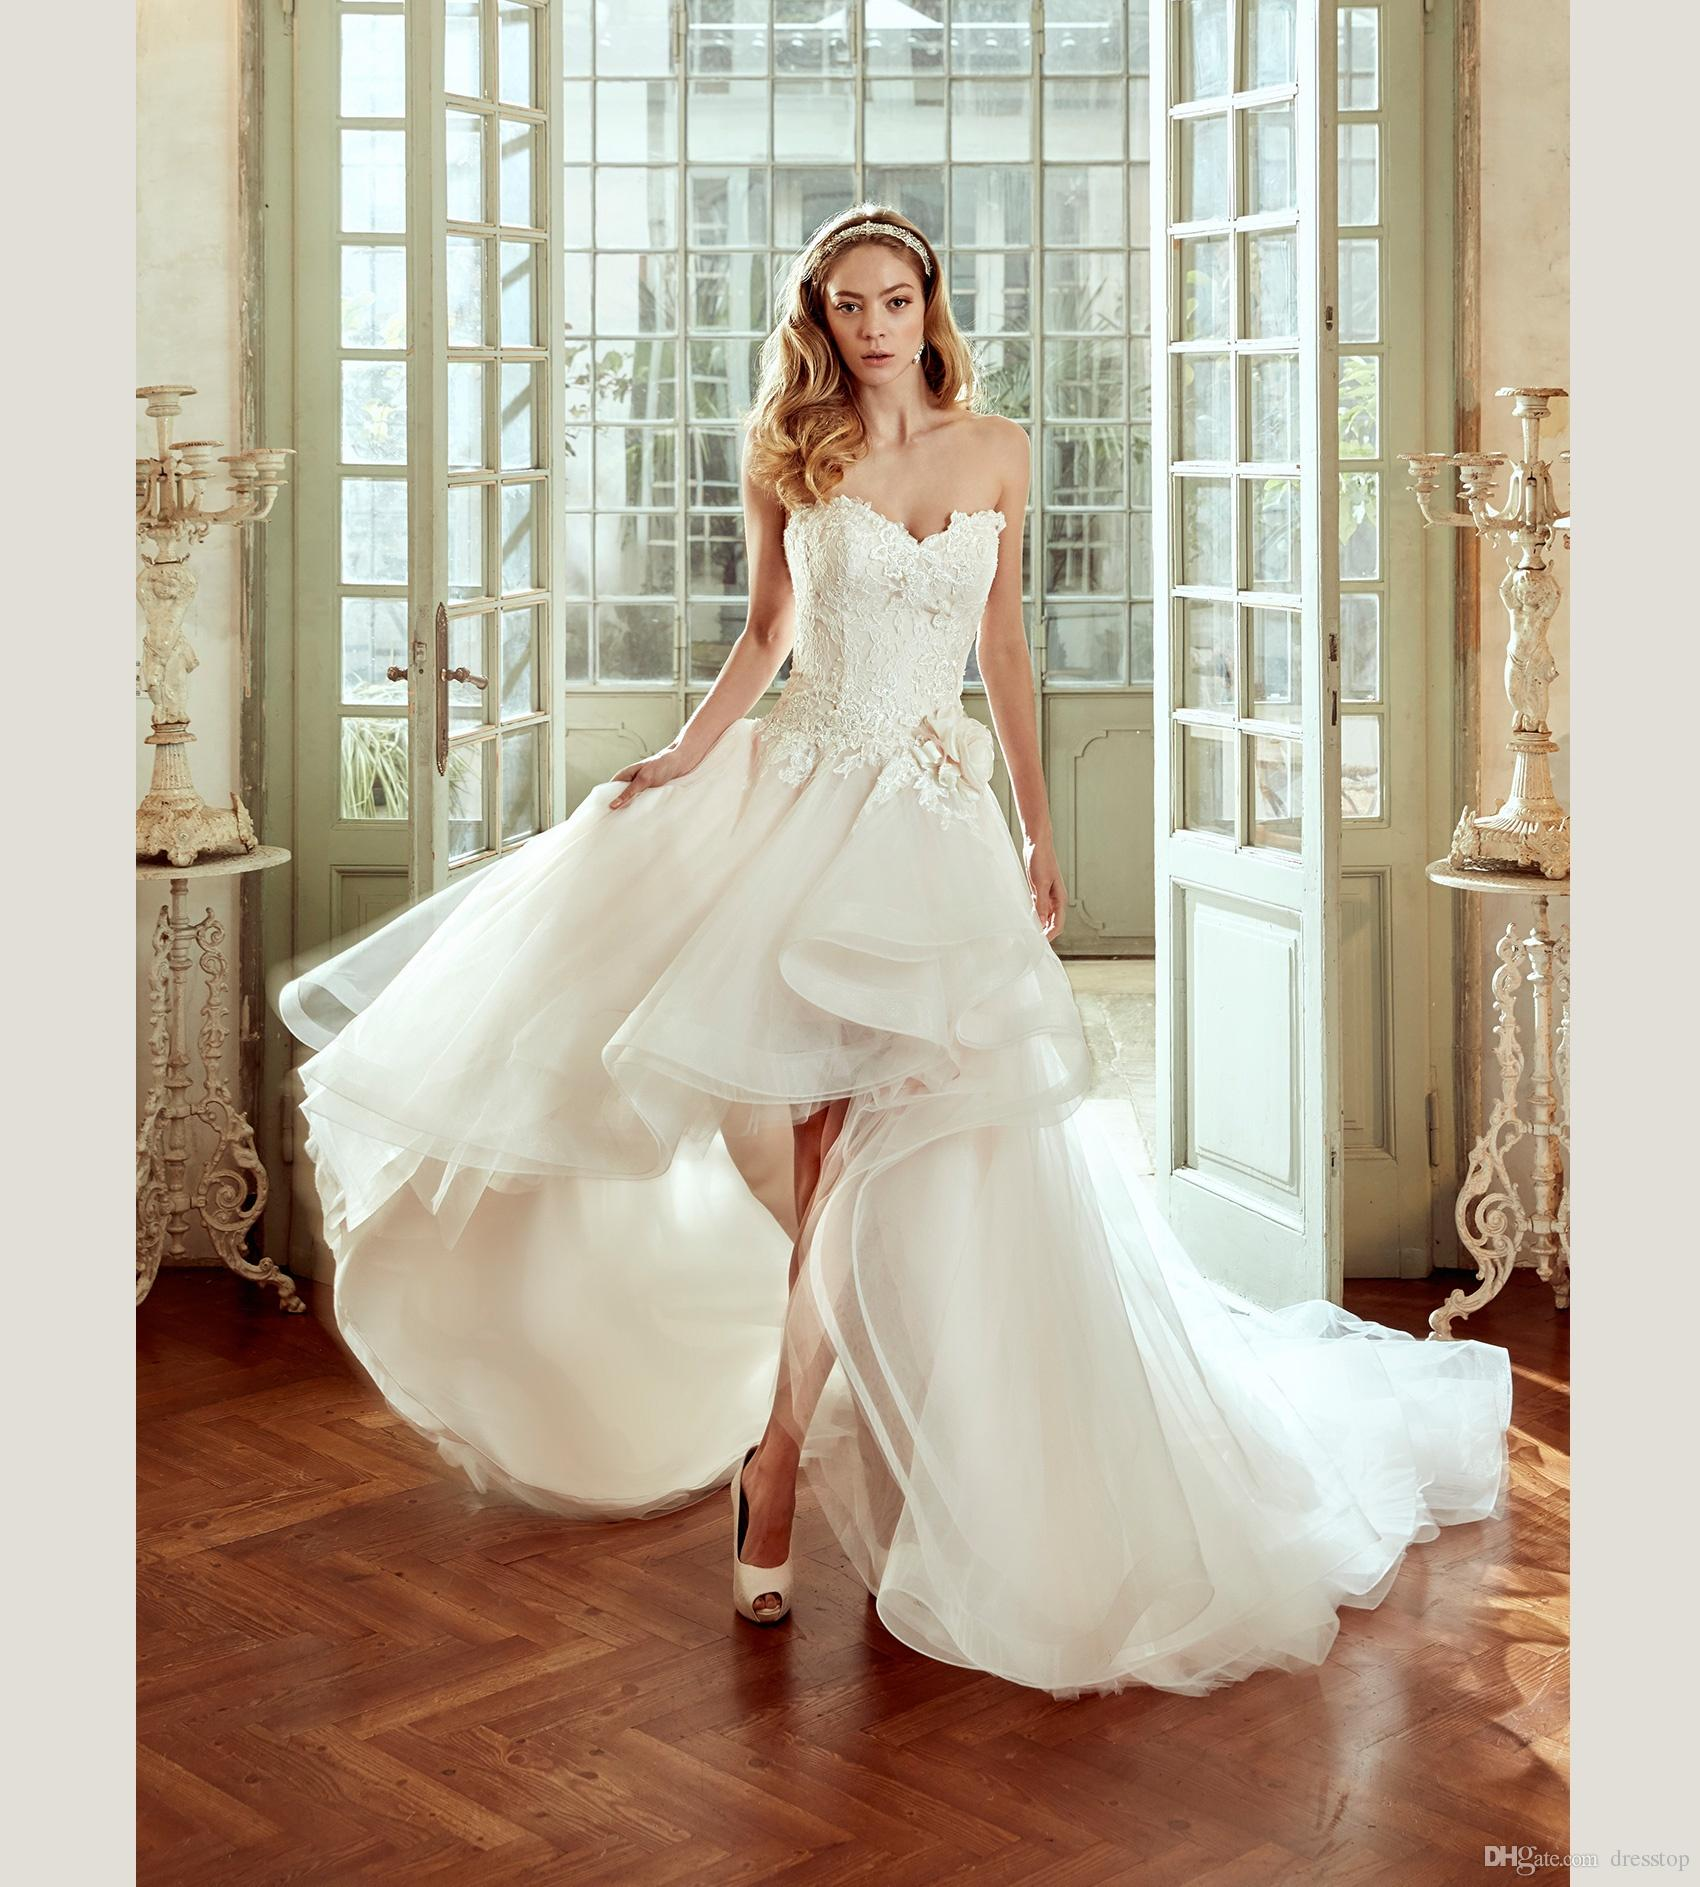 Nicole Wedding Dresses Online | Nicole Wedding Dresses for Sale